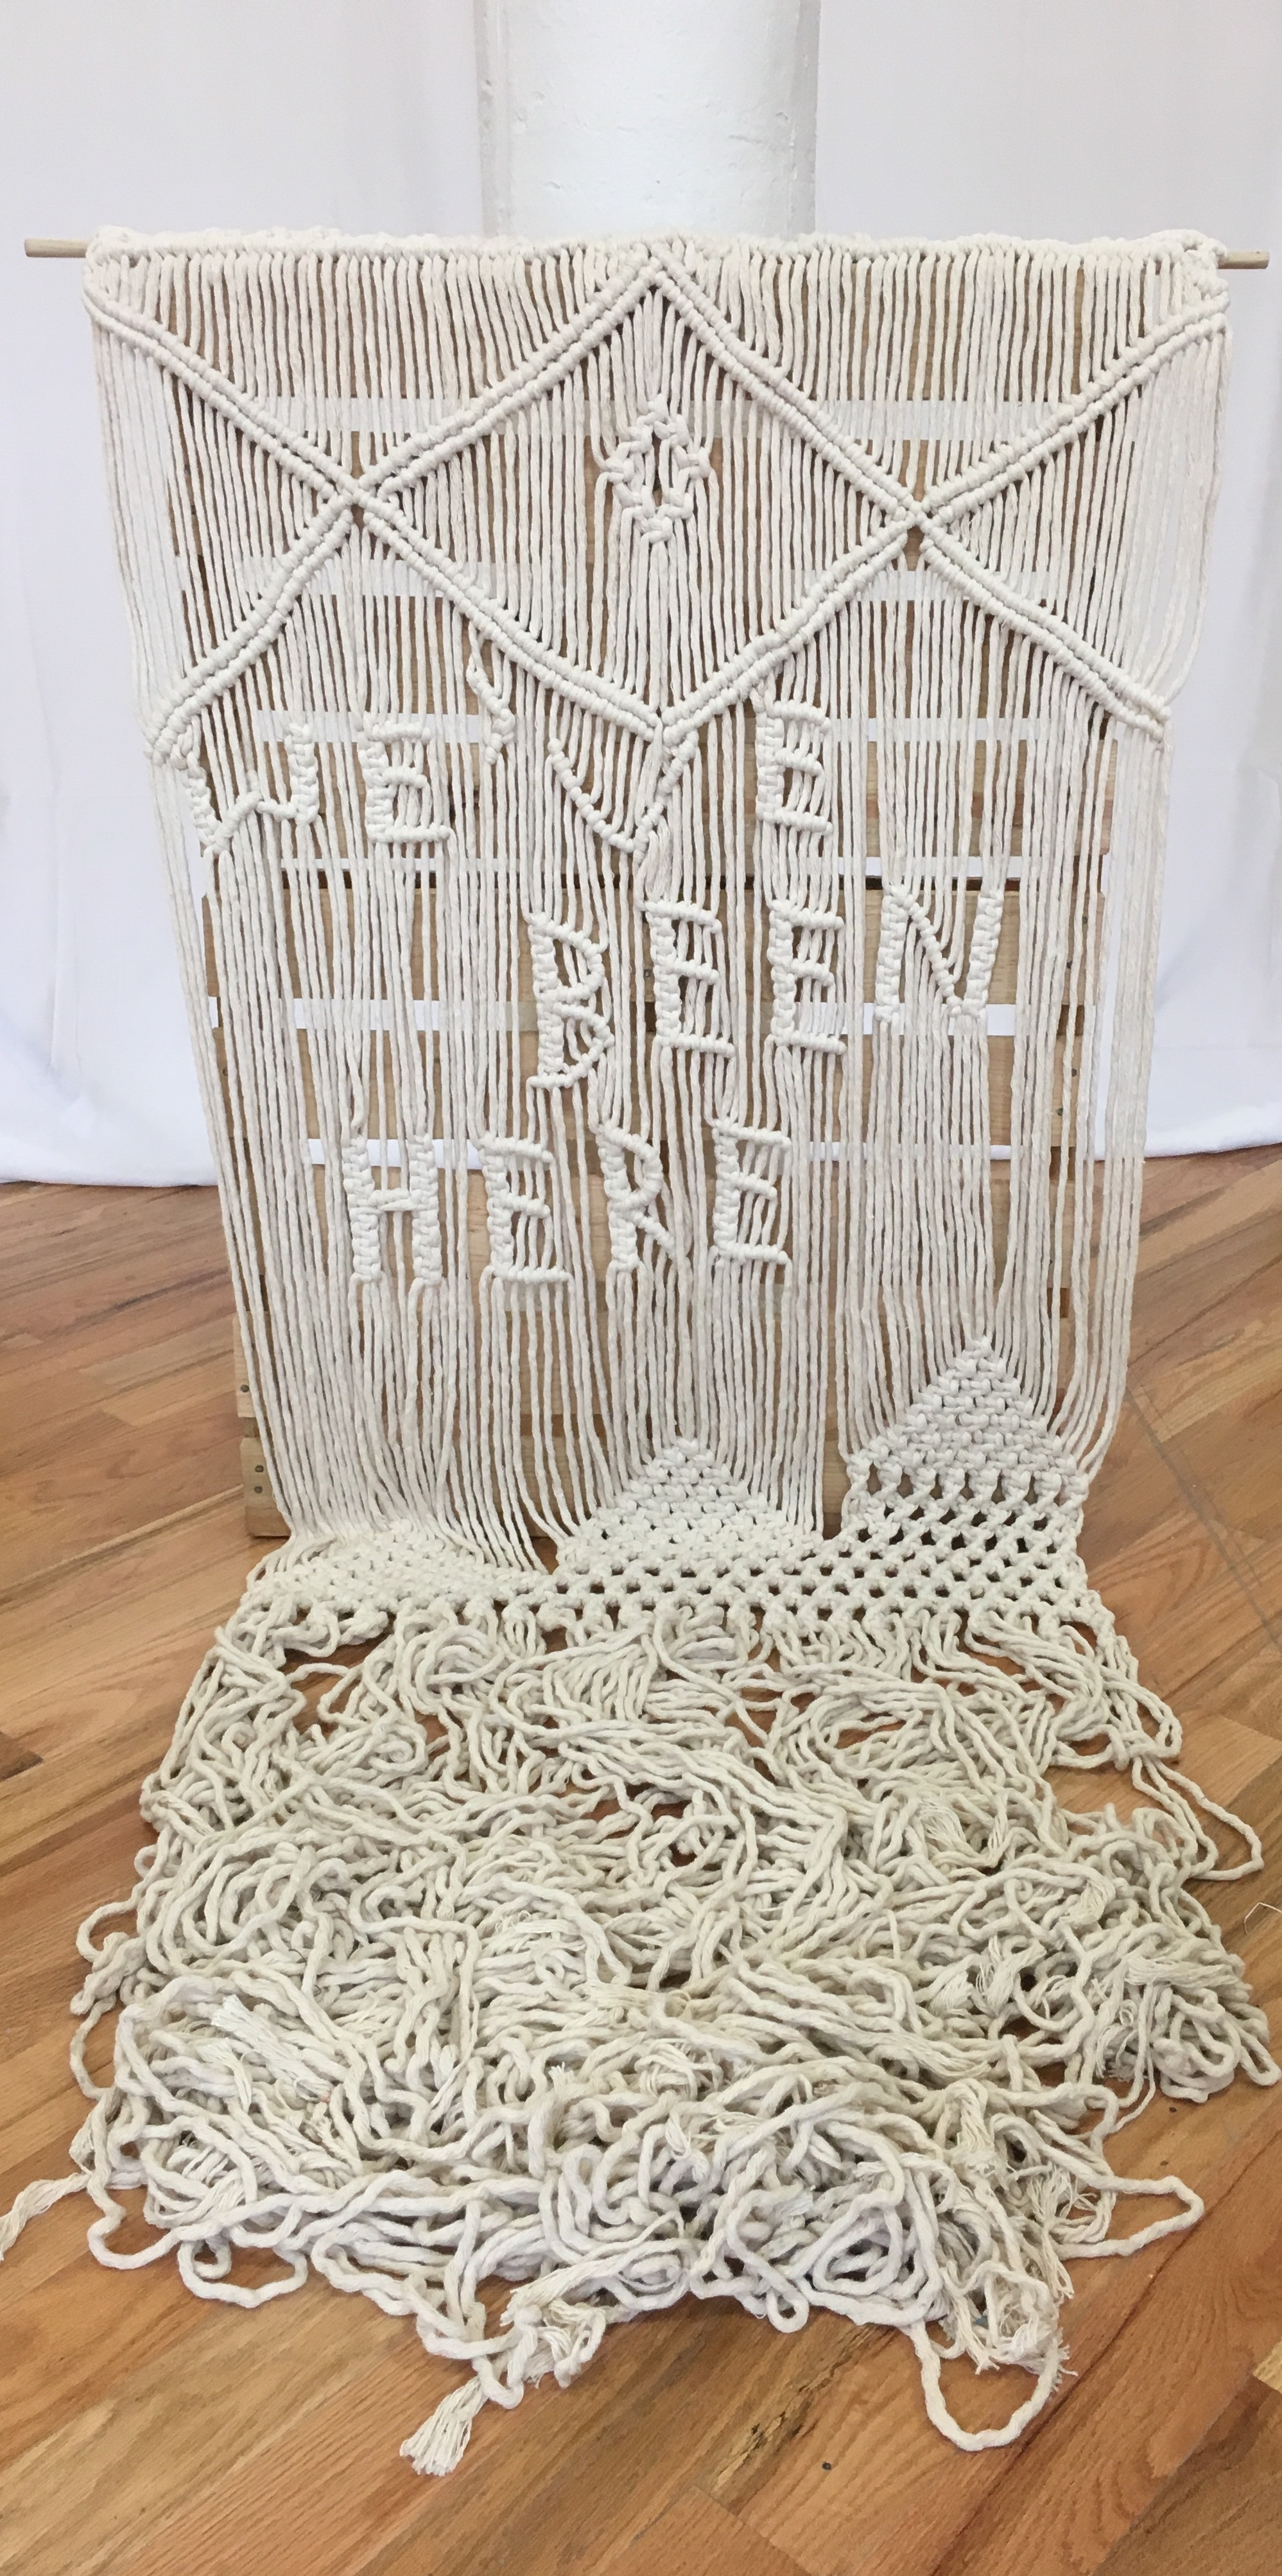 "Stephanie Echeveste, We've Been Here, Cotton cord, 2018, 50"" x 30"""